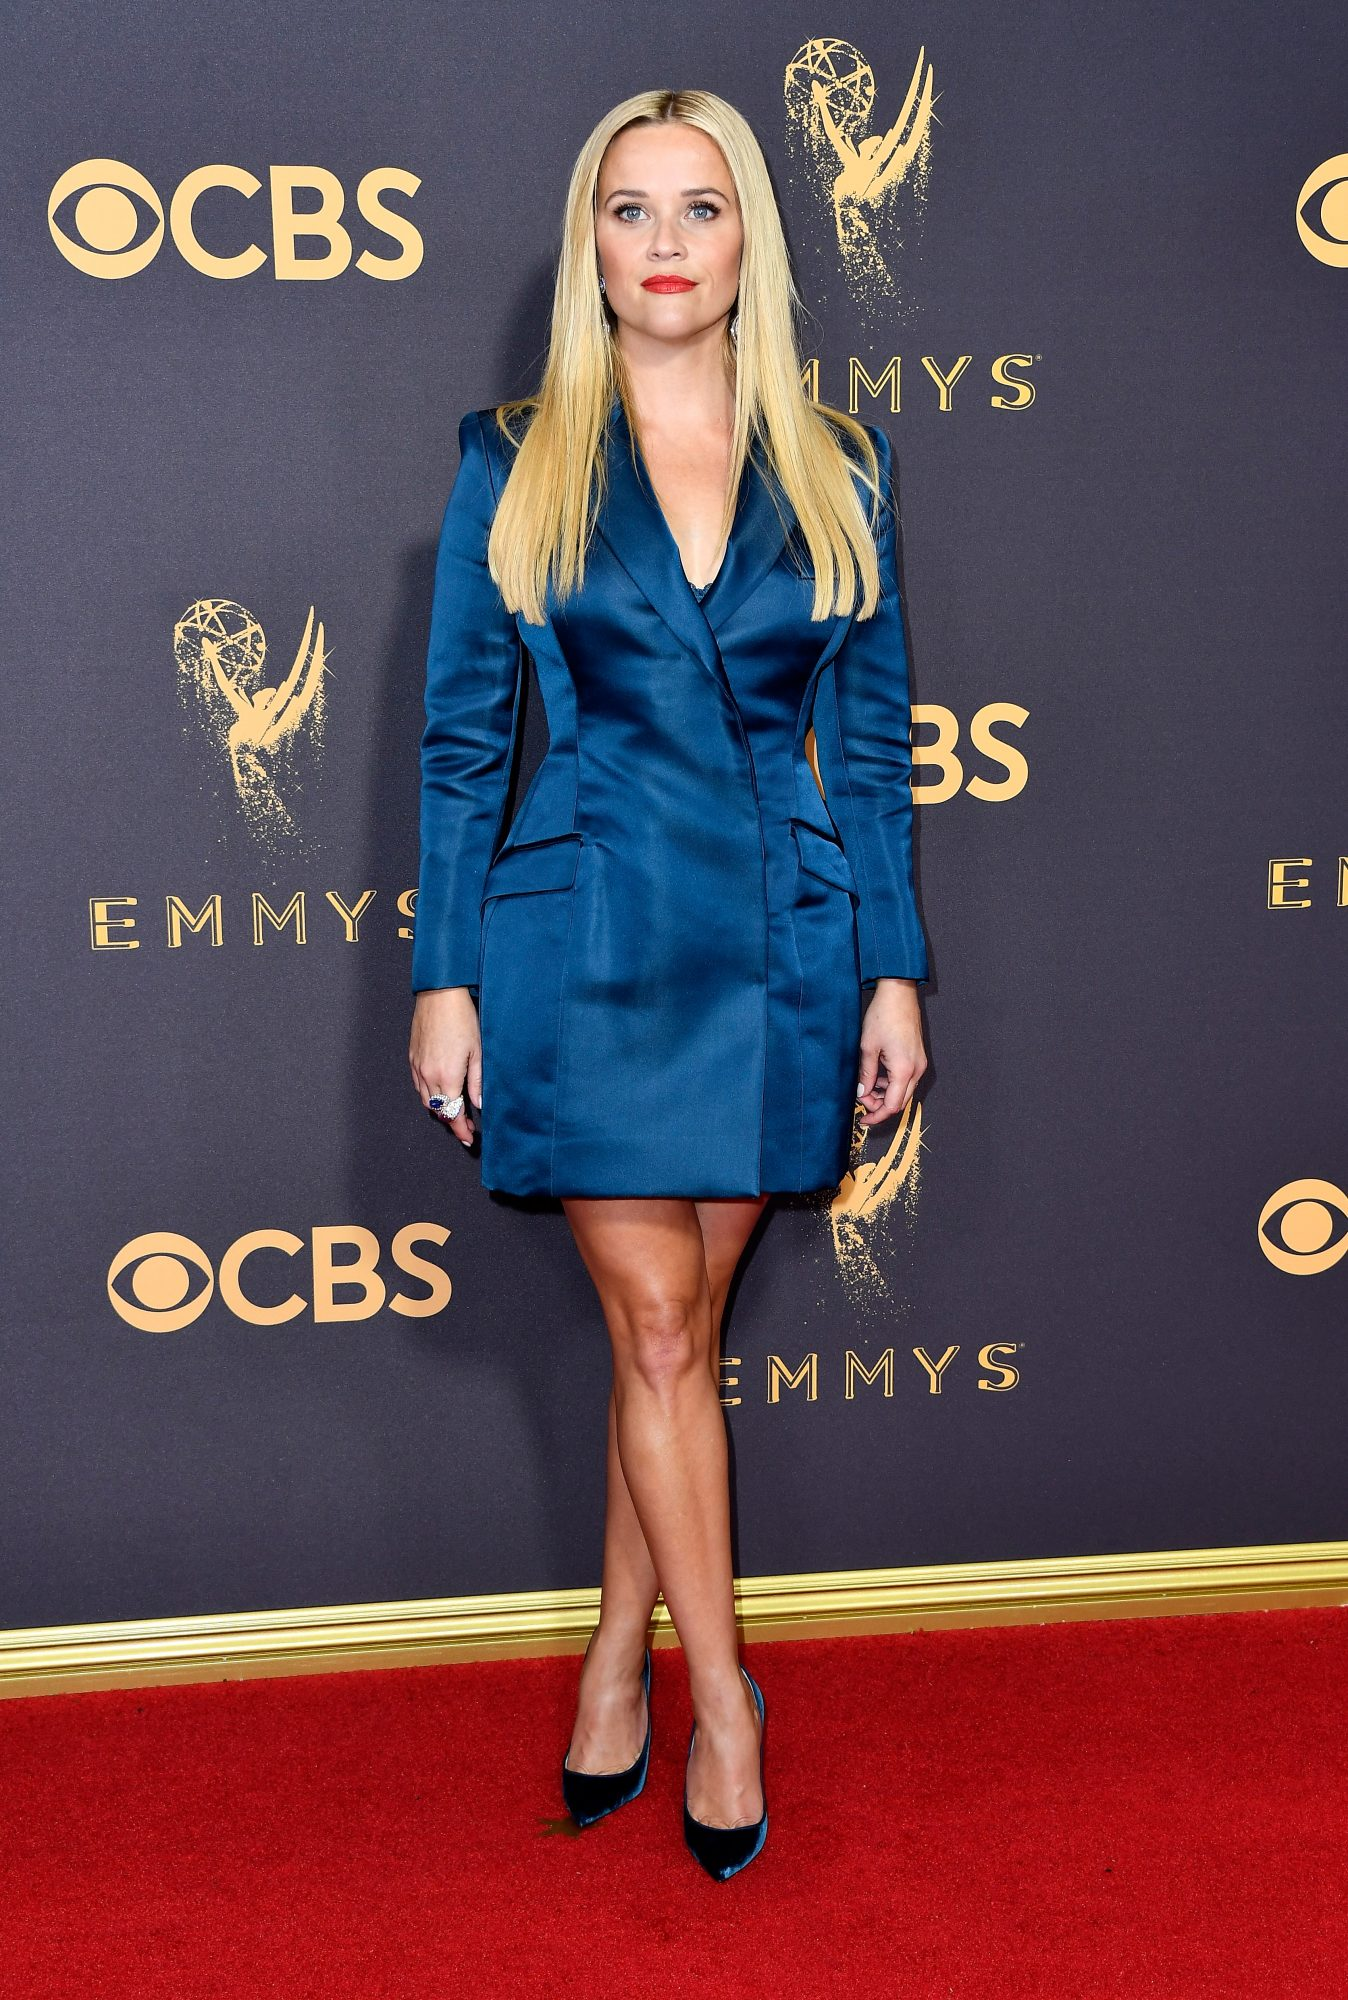 reese witherspoon 2017 emmy awards dress